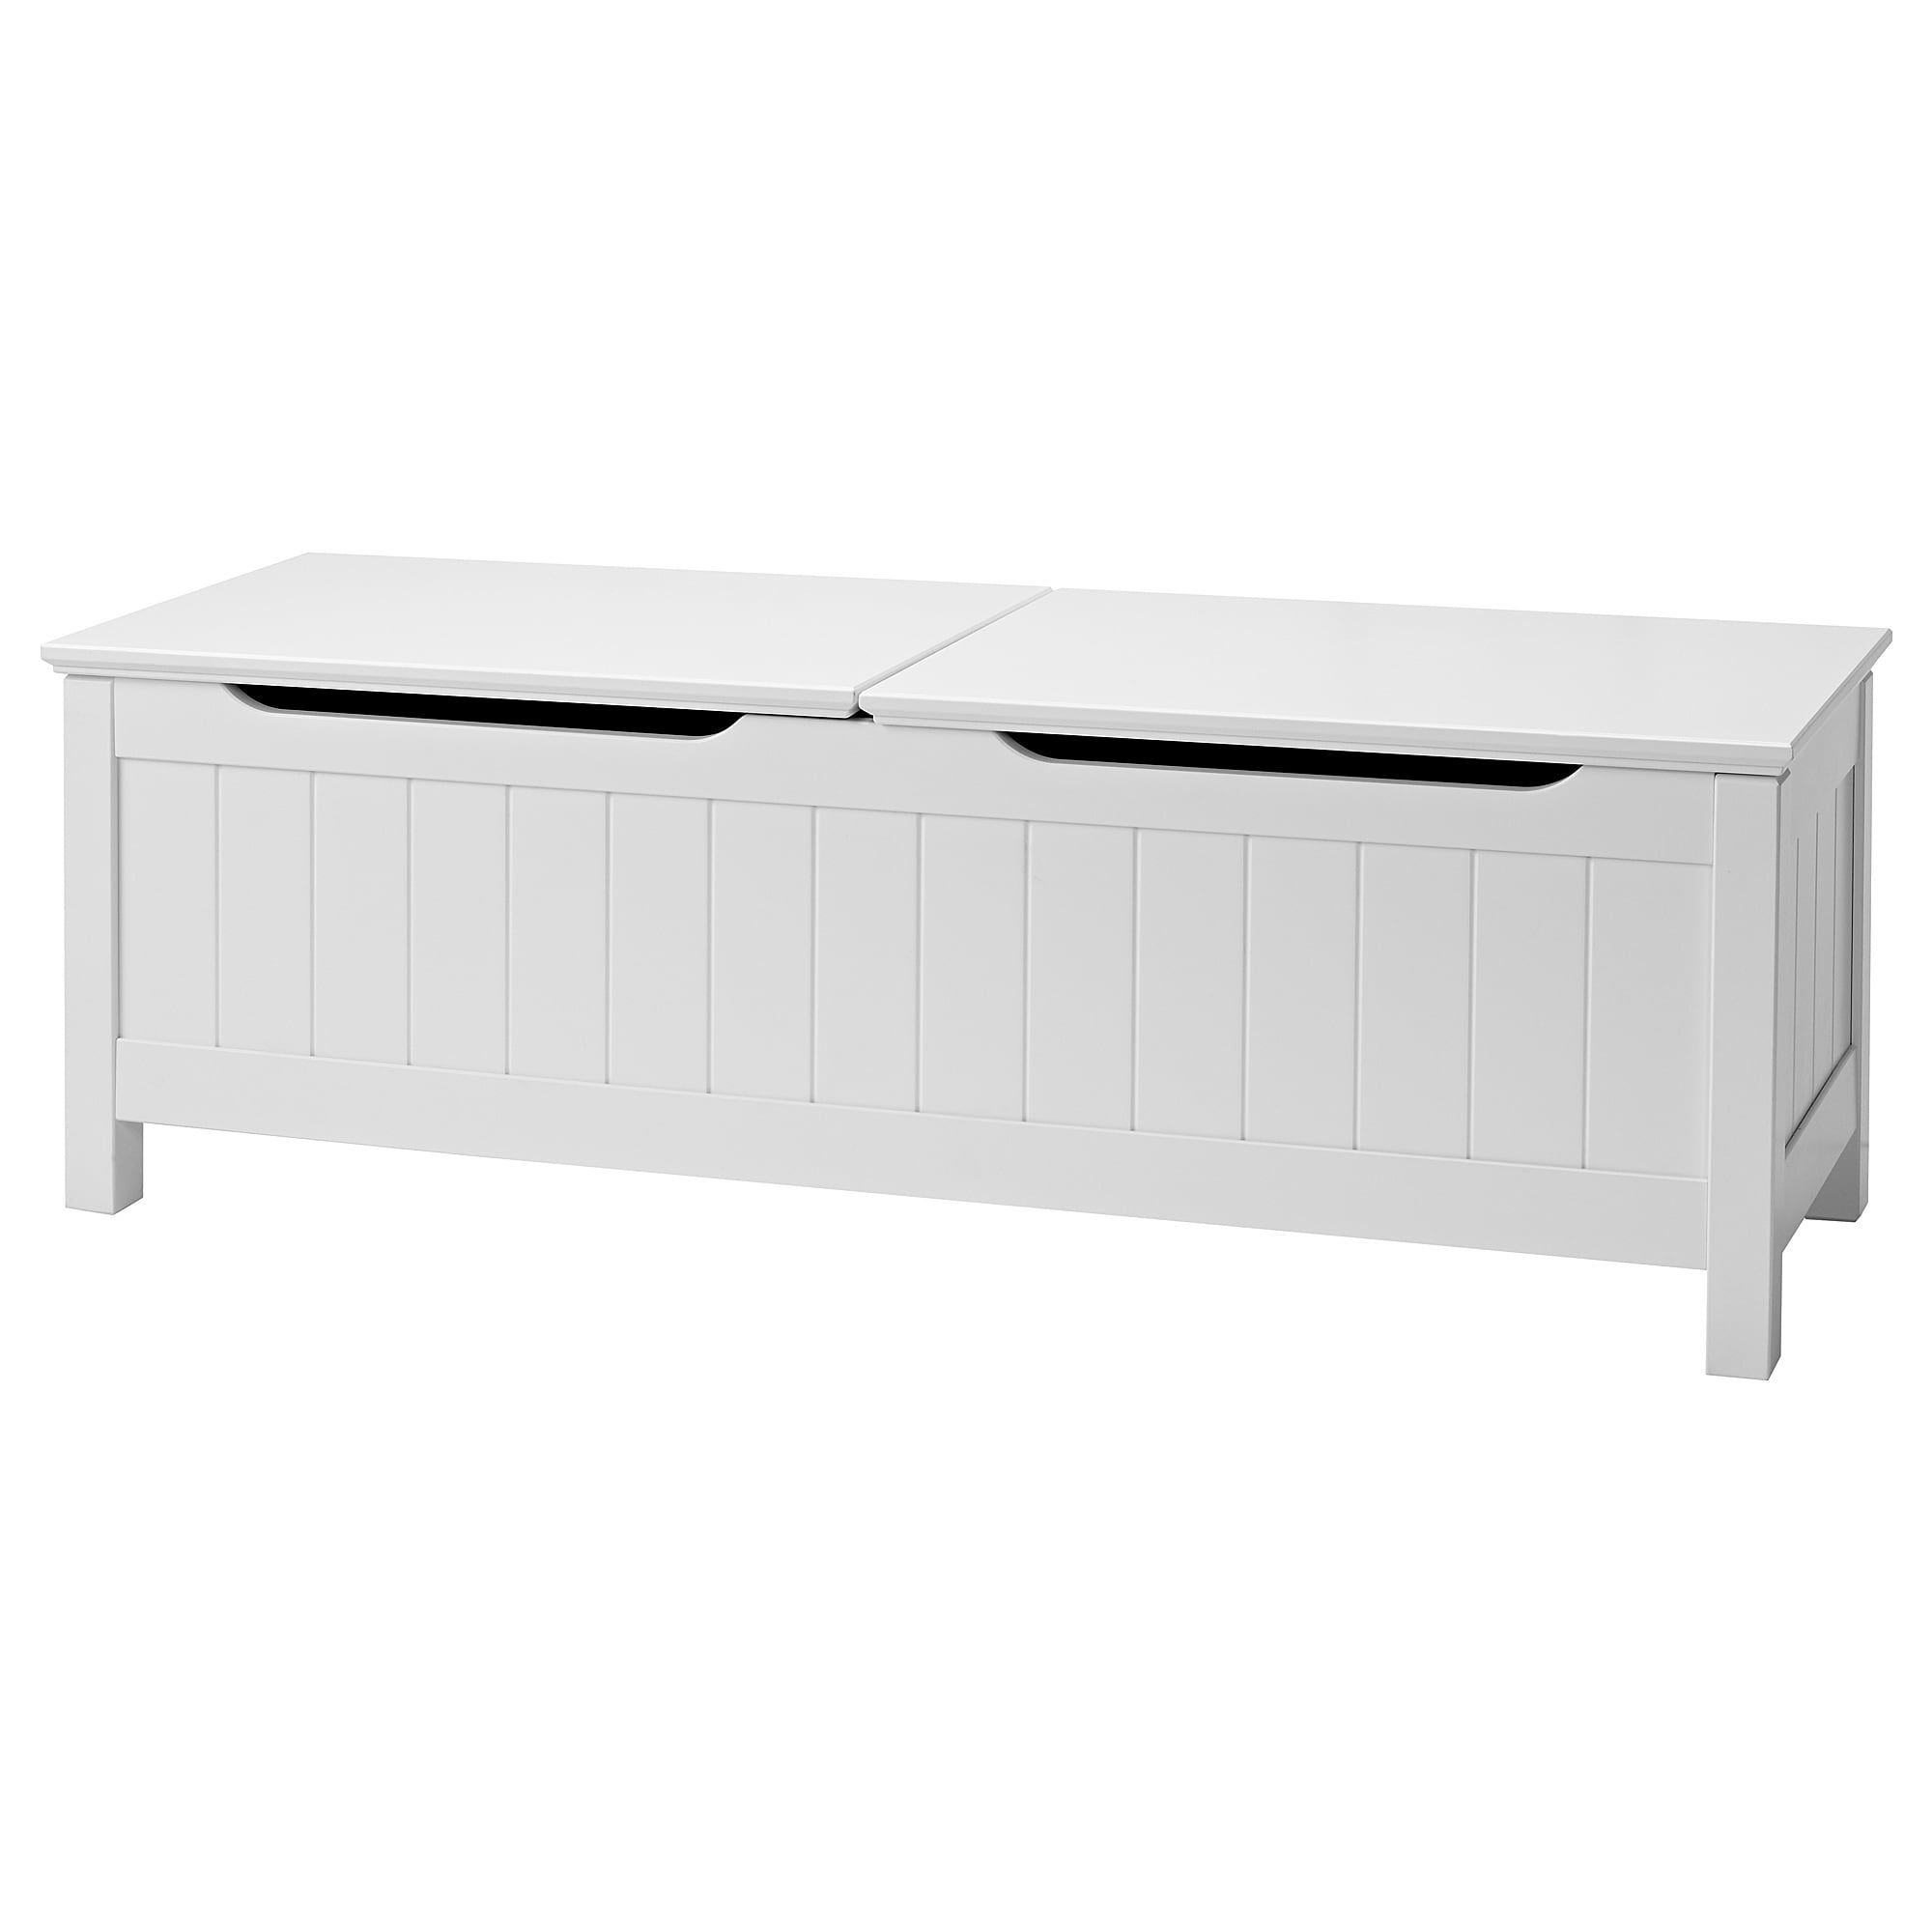 Stupendous Undredal Storage Bench Ikea In 2019 Mudroom Storage Ncnpc Chair Design For Home Ncnpcorg